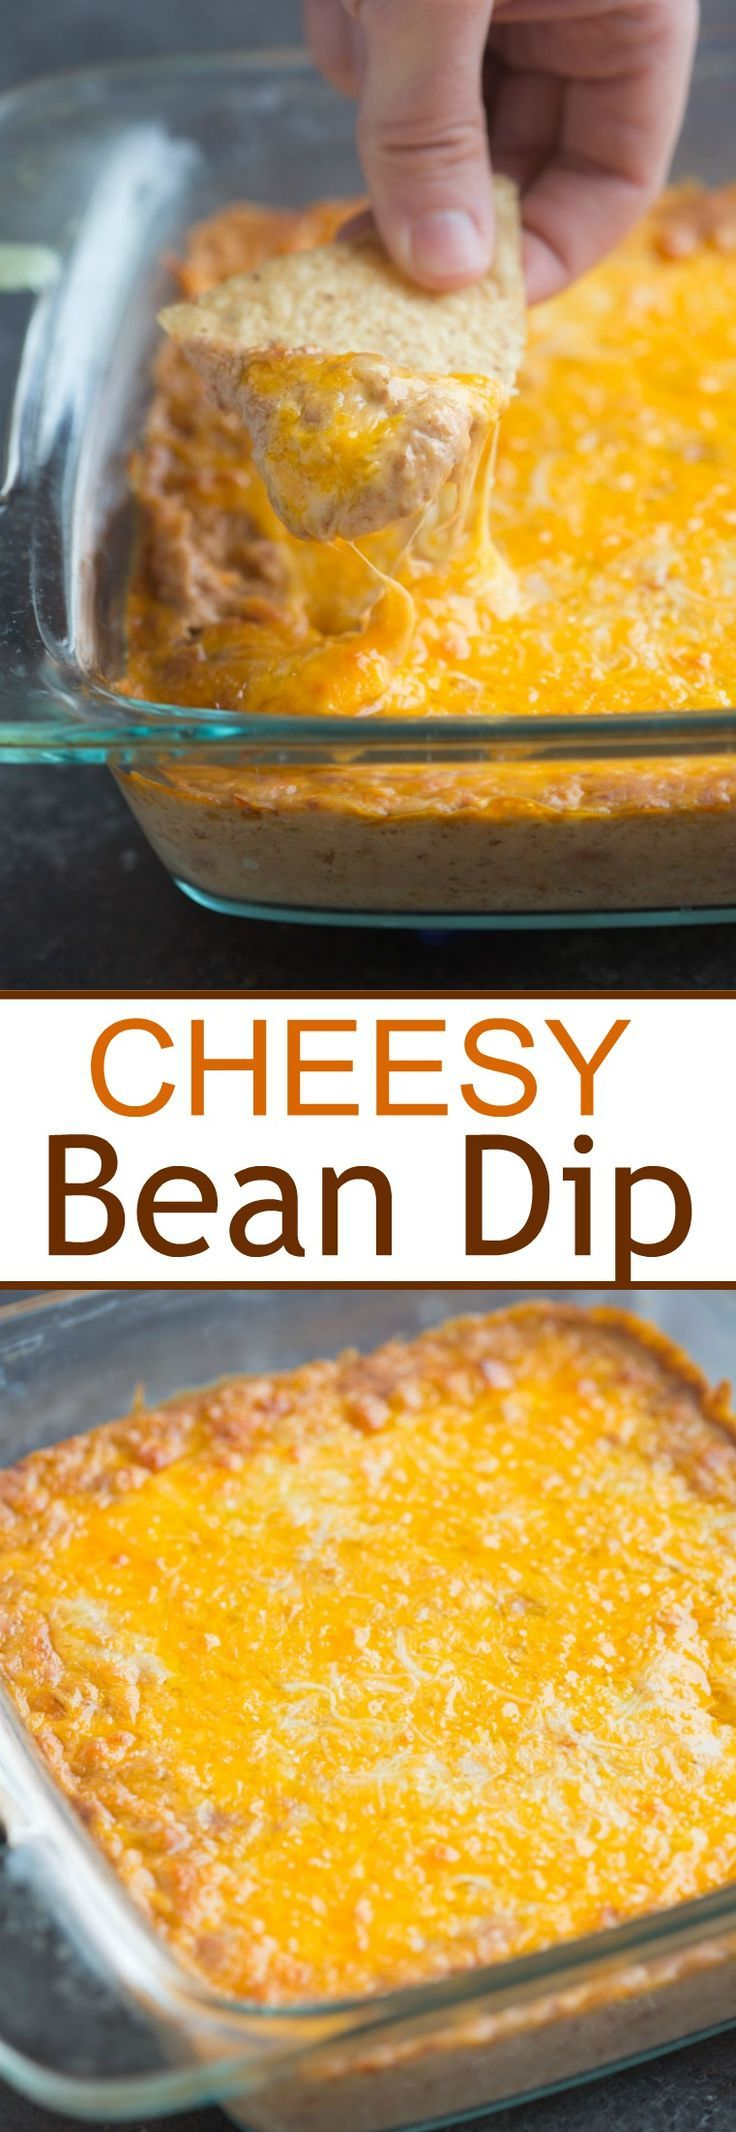 This warm, cheesy bean dip has just 6 ingredients and is the yummiest easy appetizer! Serve as a dip with tortilla chips or even inside tacos, or as a Mexican side dish.   Tastes Better From Scratch